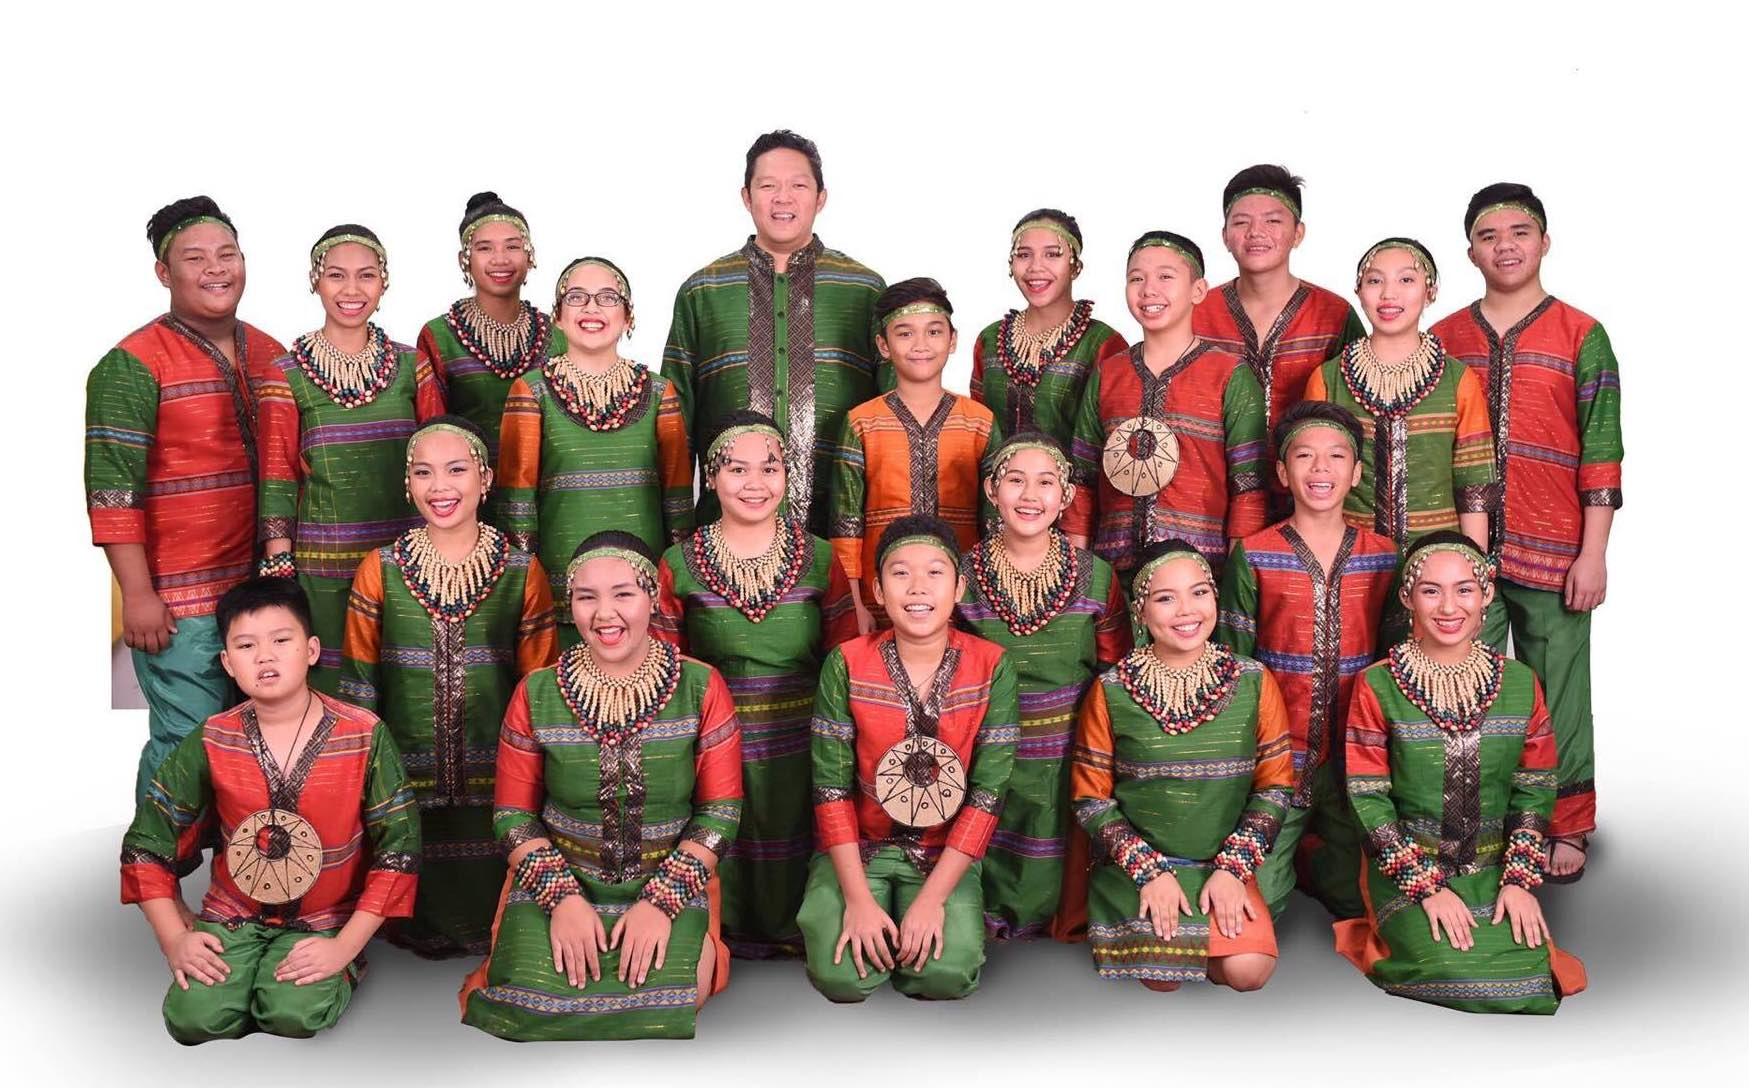 Award-winning Mandaue Children's Choir to sing in San Francisco